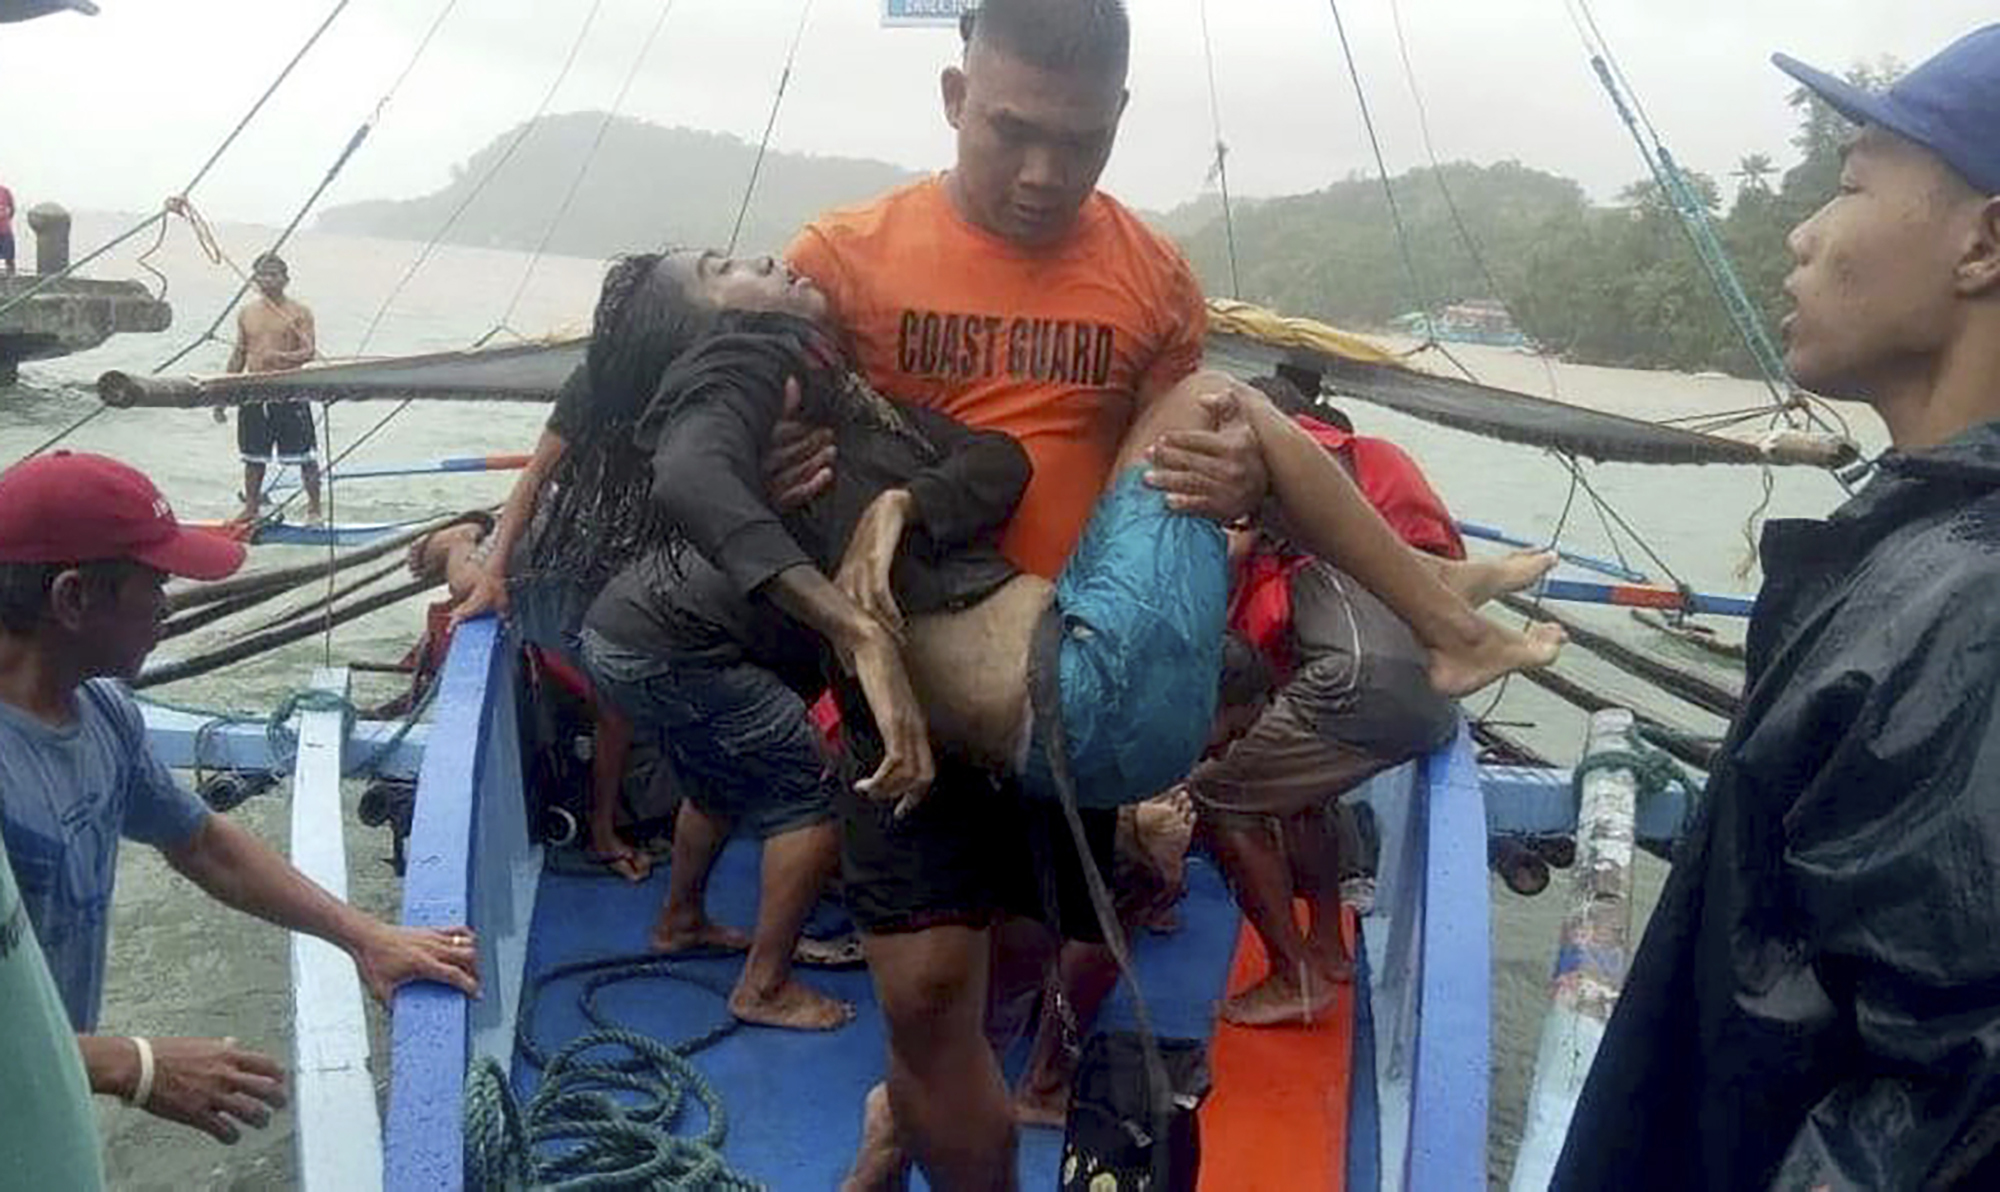 31 dead, 62 rescued after boats capsize in Philippines